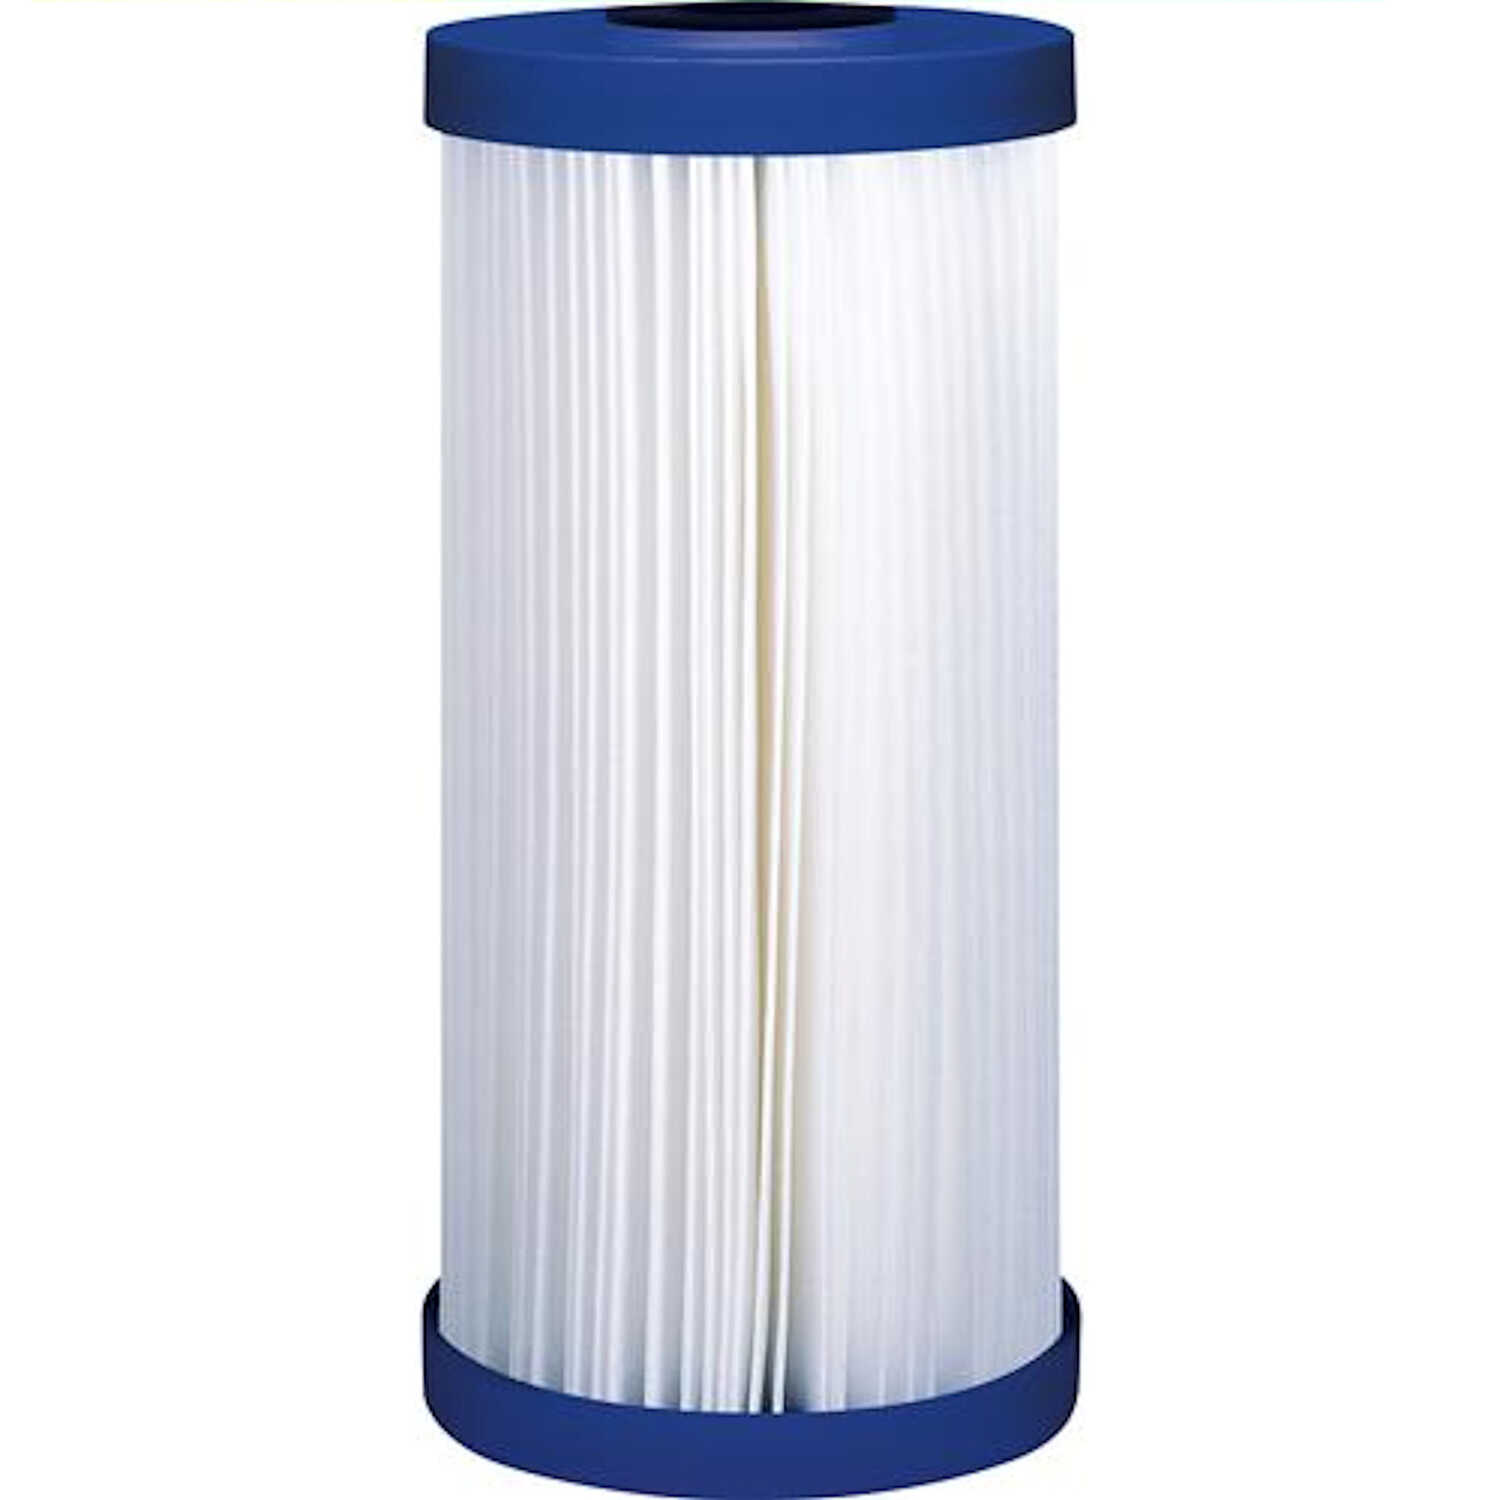 GE Appliances  High-Flow  Replacement Water Filter  For Whole House 24000 gal.